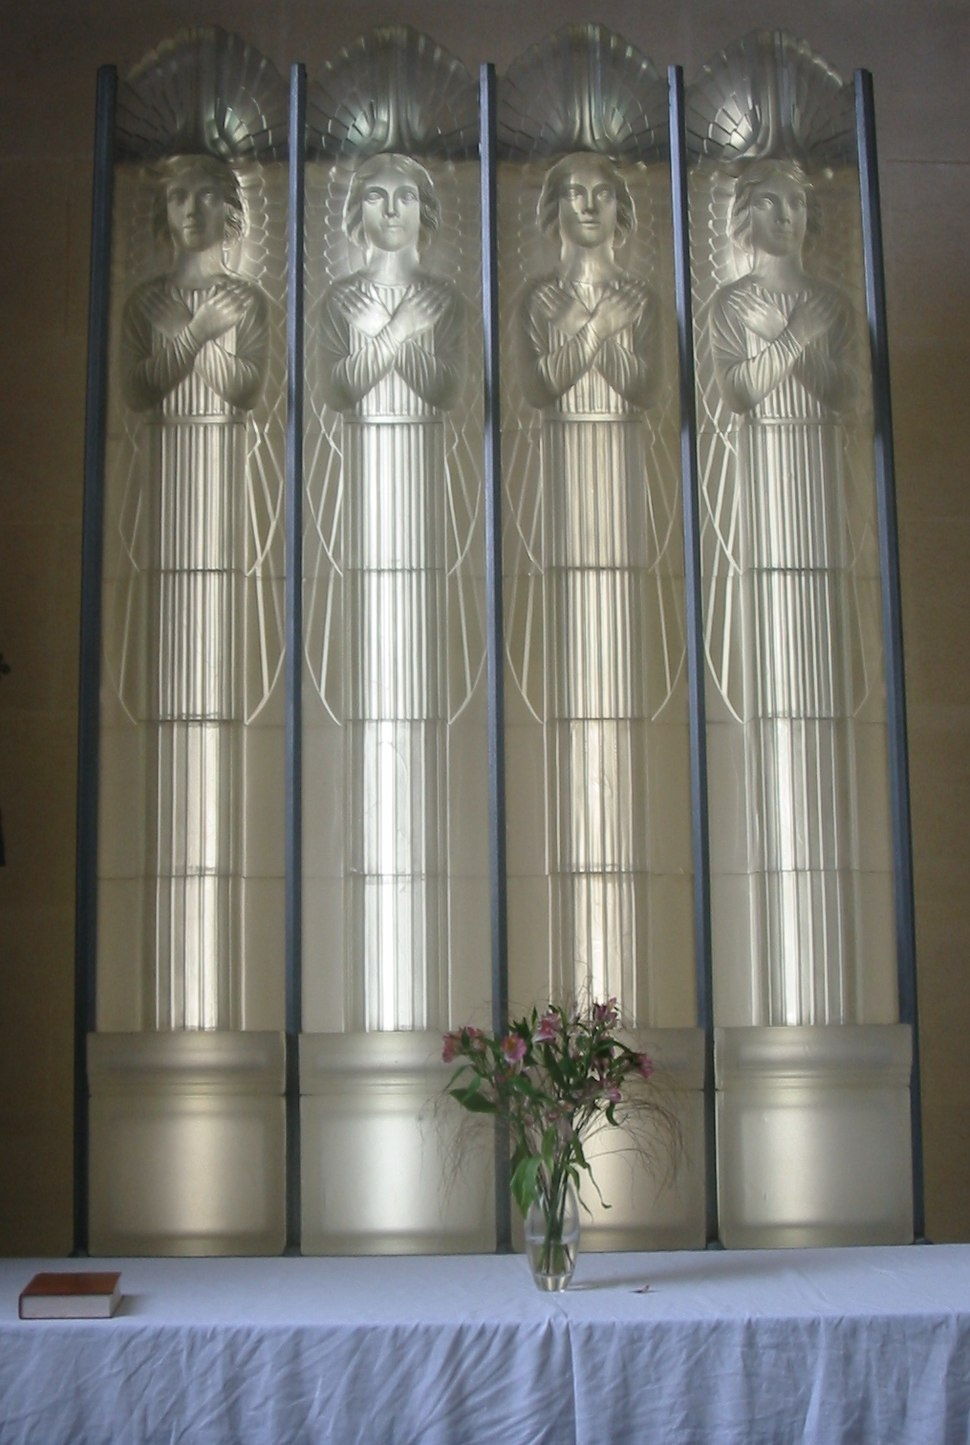 Lalique glass altarpiece in the Glass Church Jersey